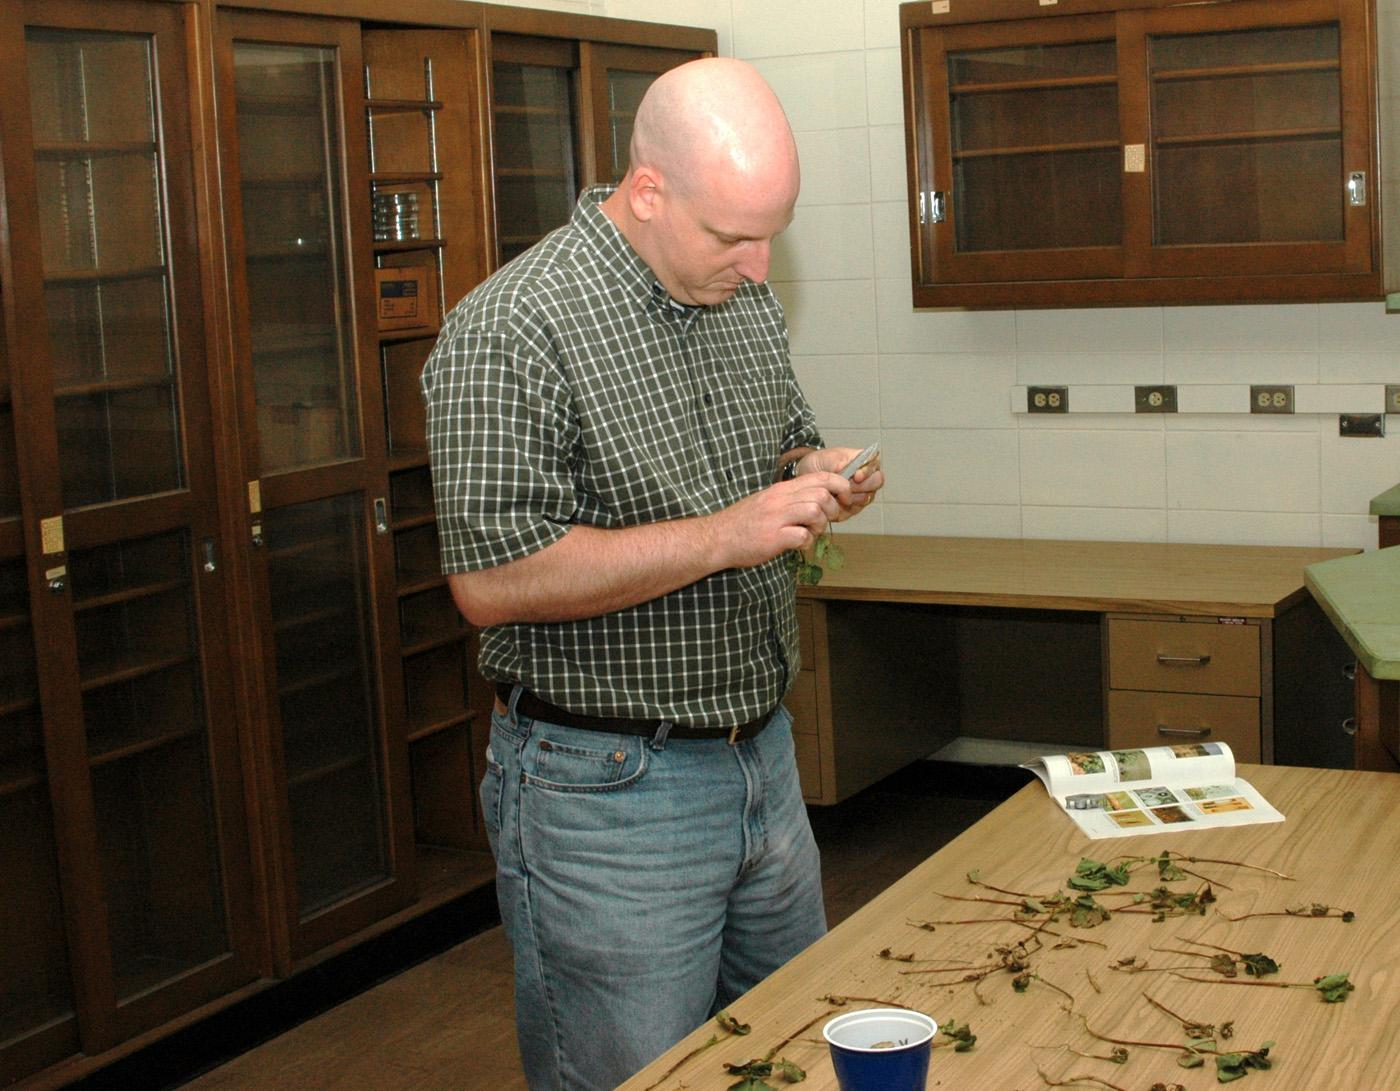 Mississippi State University plant pathologist Tom Allen checks cotton seedlings for black root rot disease, a fungus that causes plants to rot from the roots. (MSU Delta Research and Extension file photo)